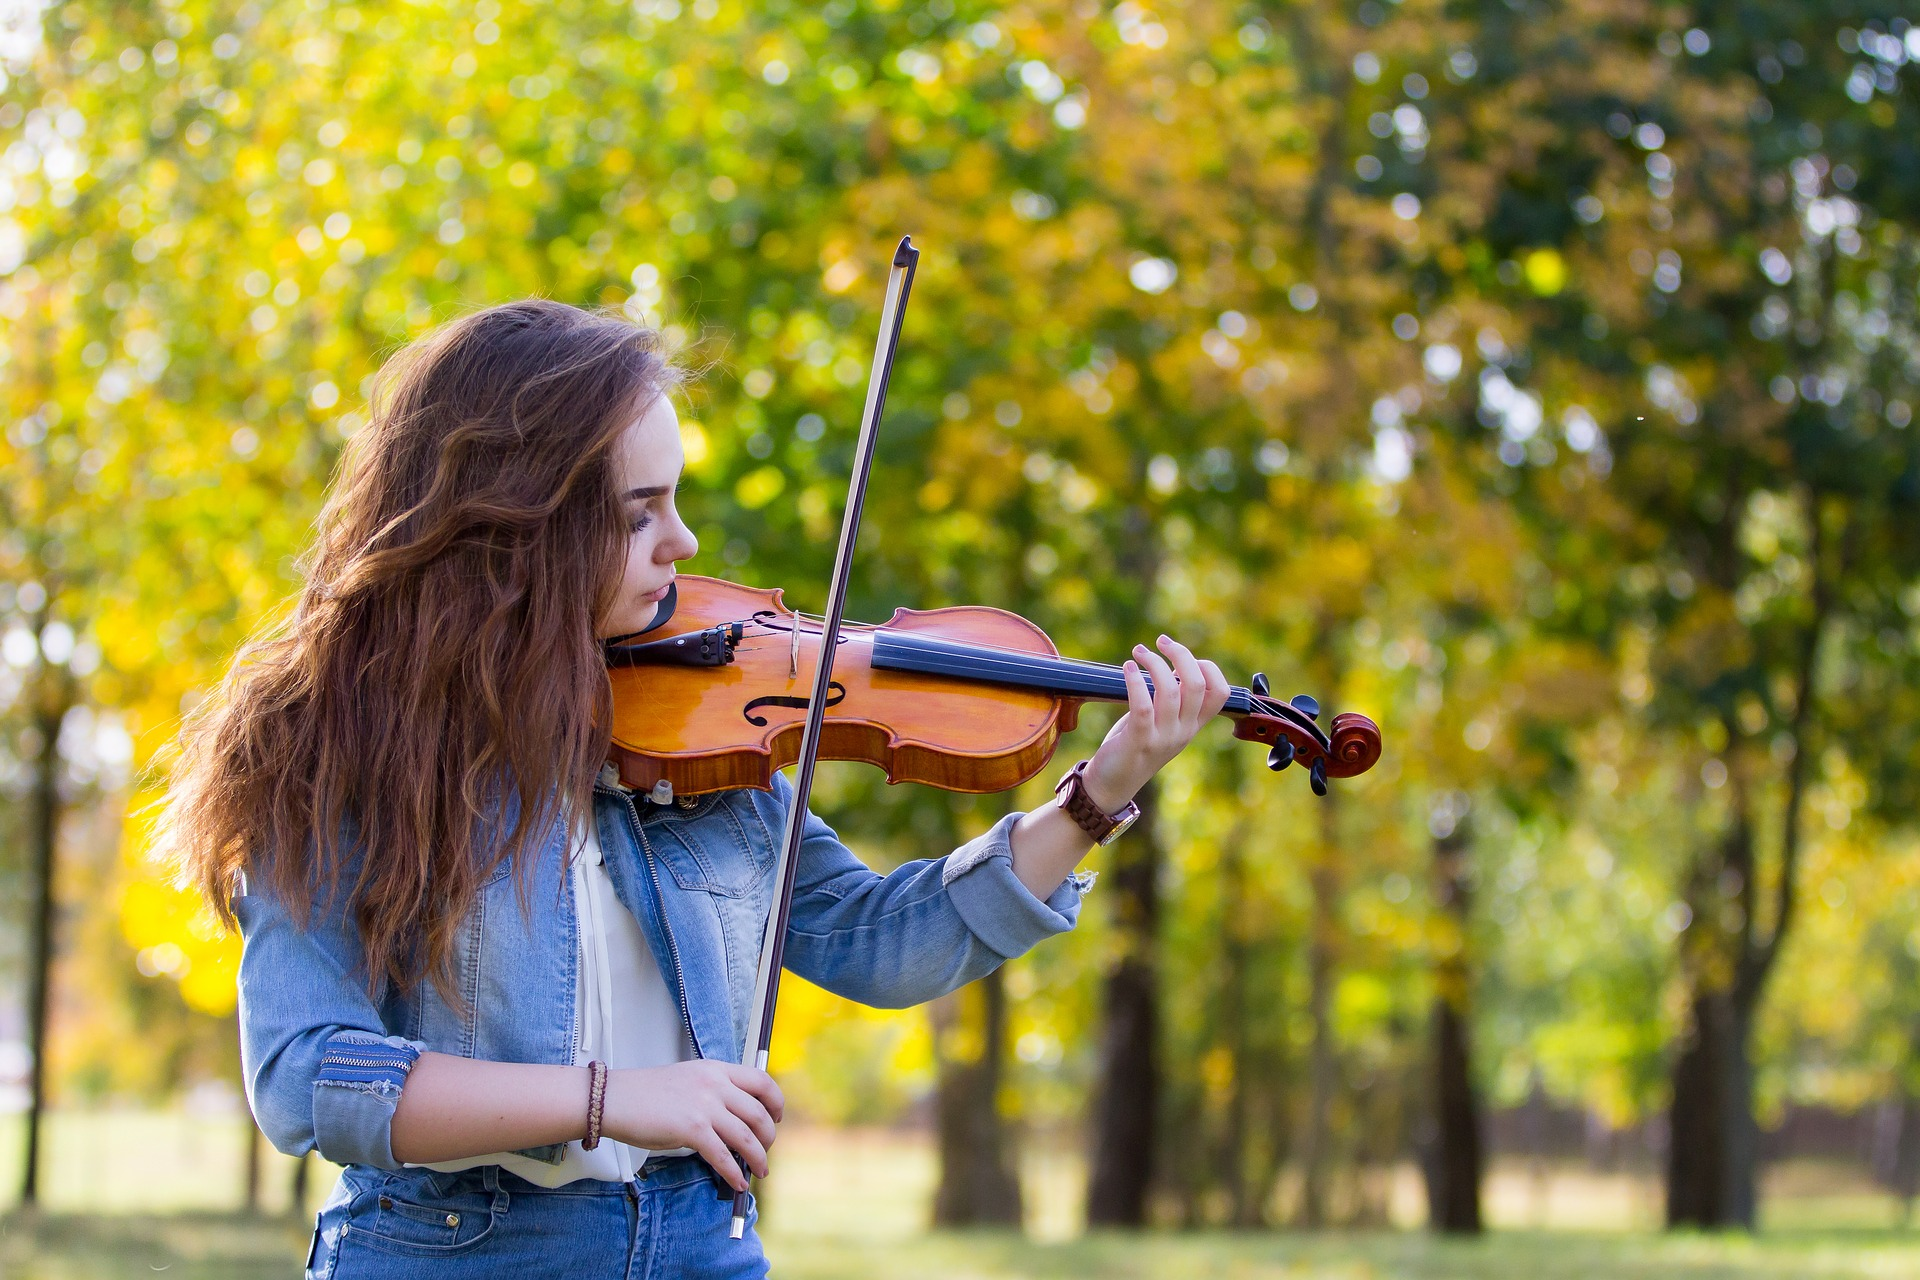 violinist playing the violin outdoors in a park